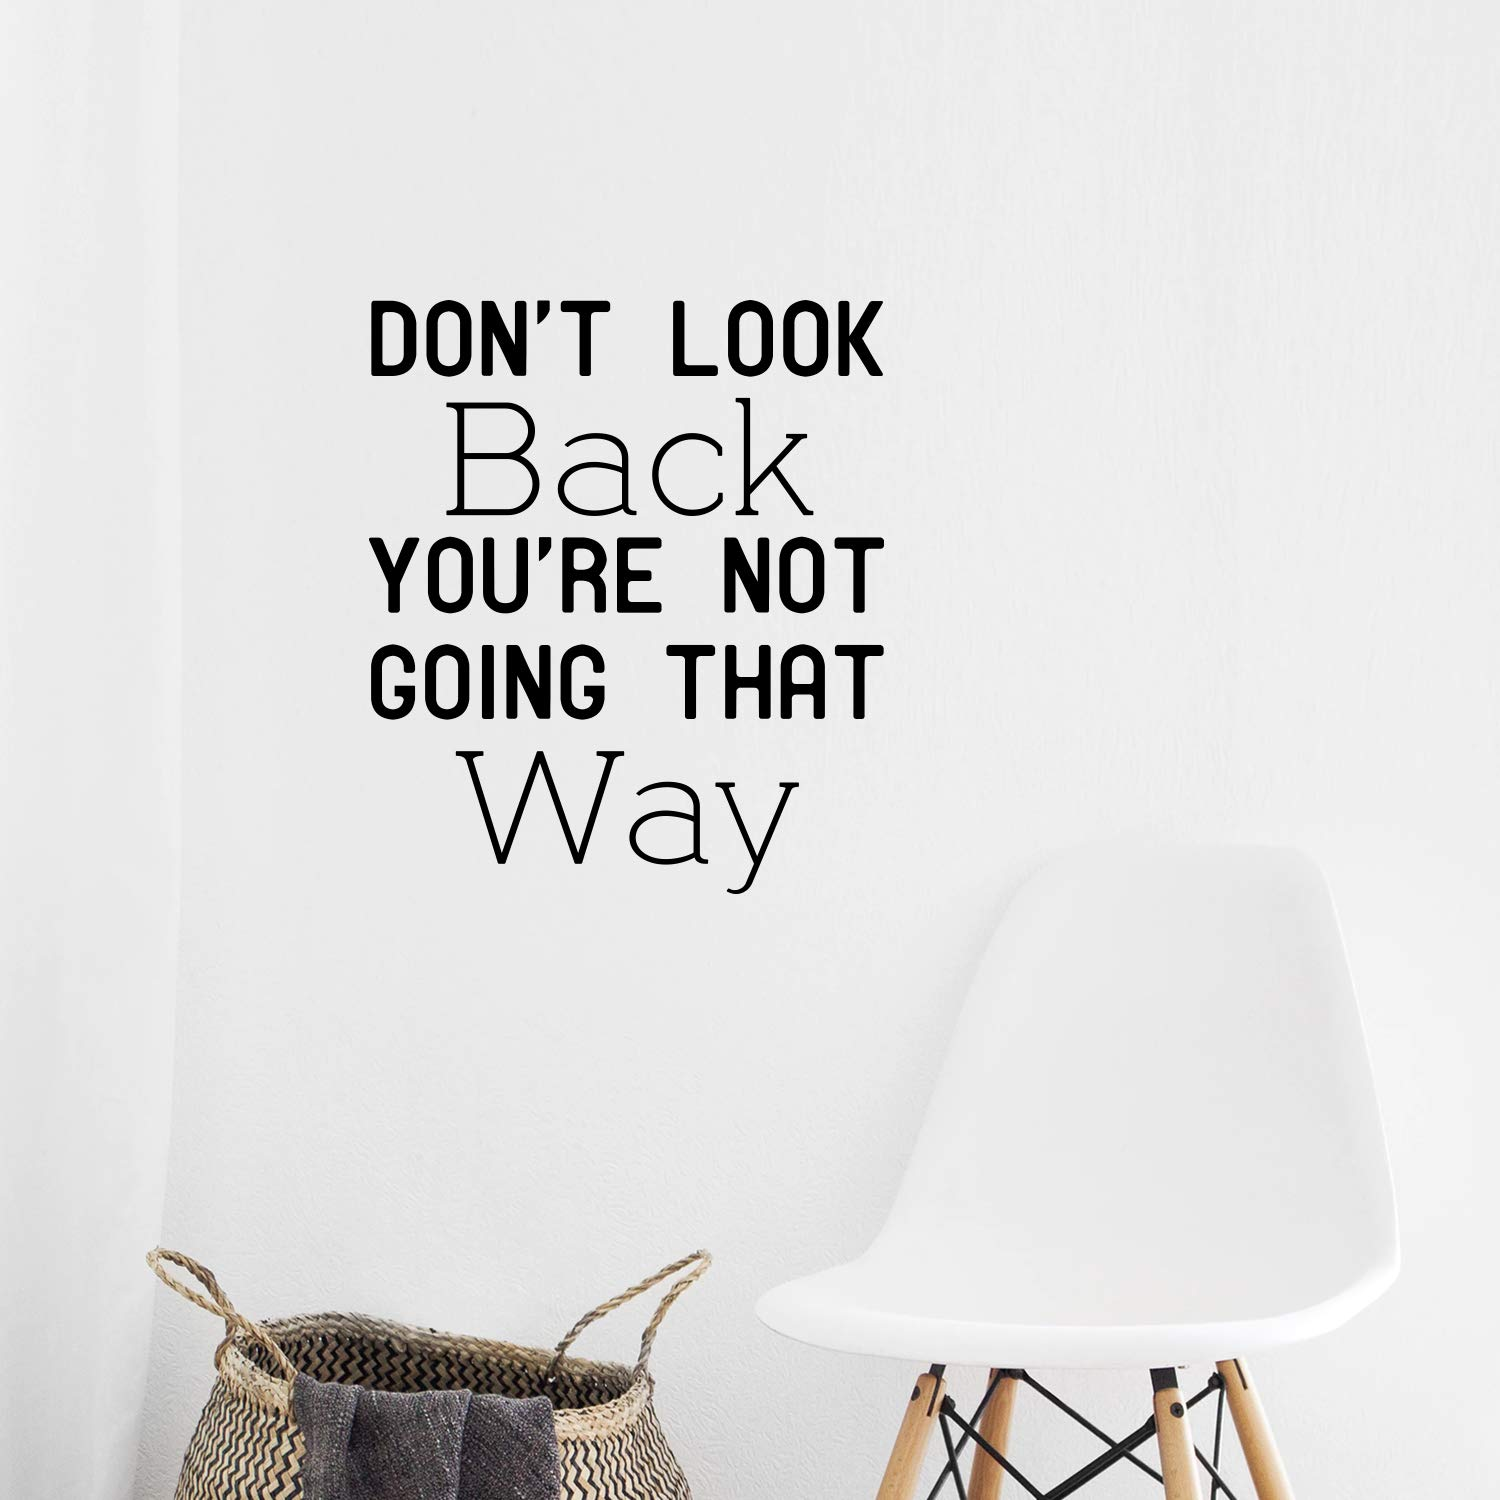 Diy don't look back Cartoon Wall Decals Pvc Mural Art Diy Poster Decor Living Room Bedroom Removable Wall Decoration